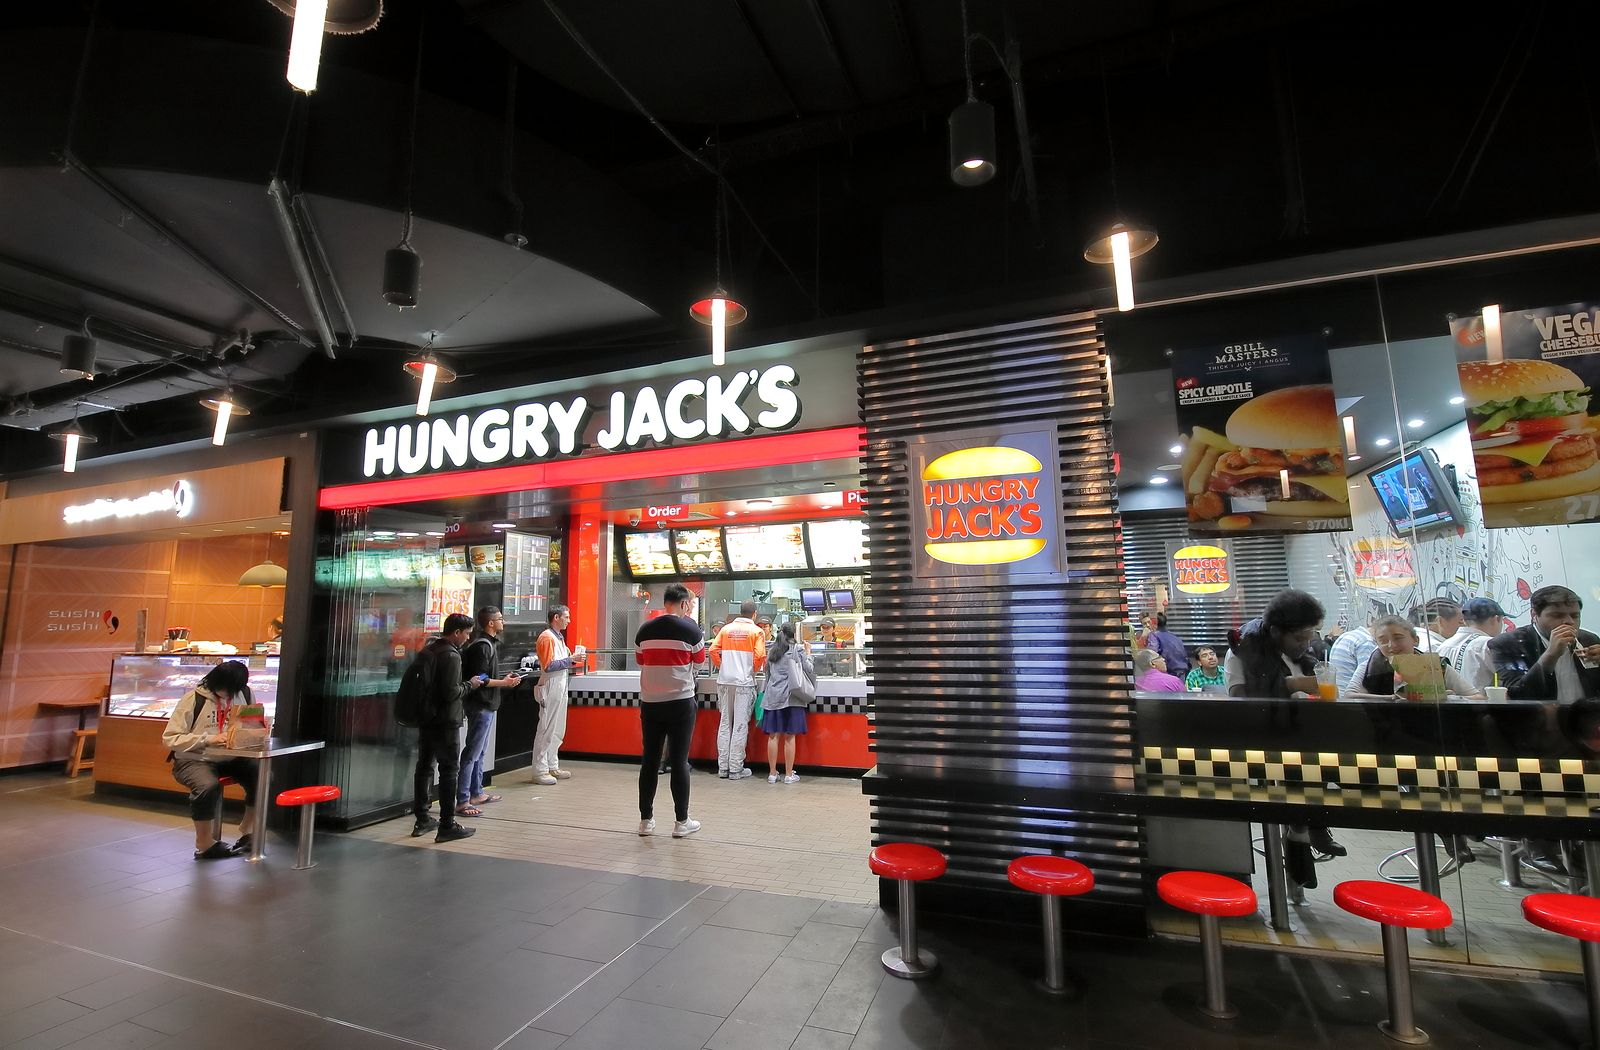 Hungry Jacks founder questions franchising reforms | Inside Franchise Business